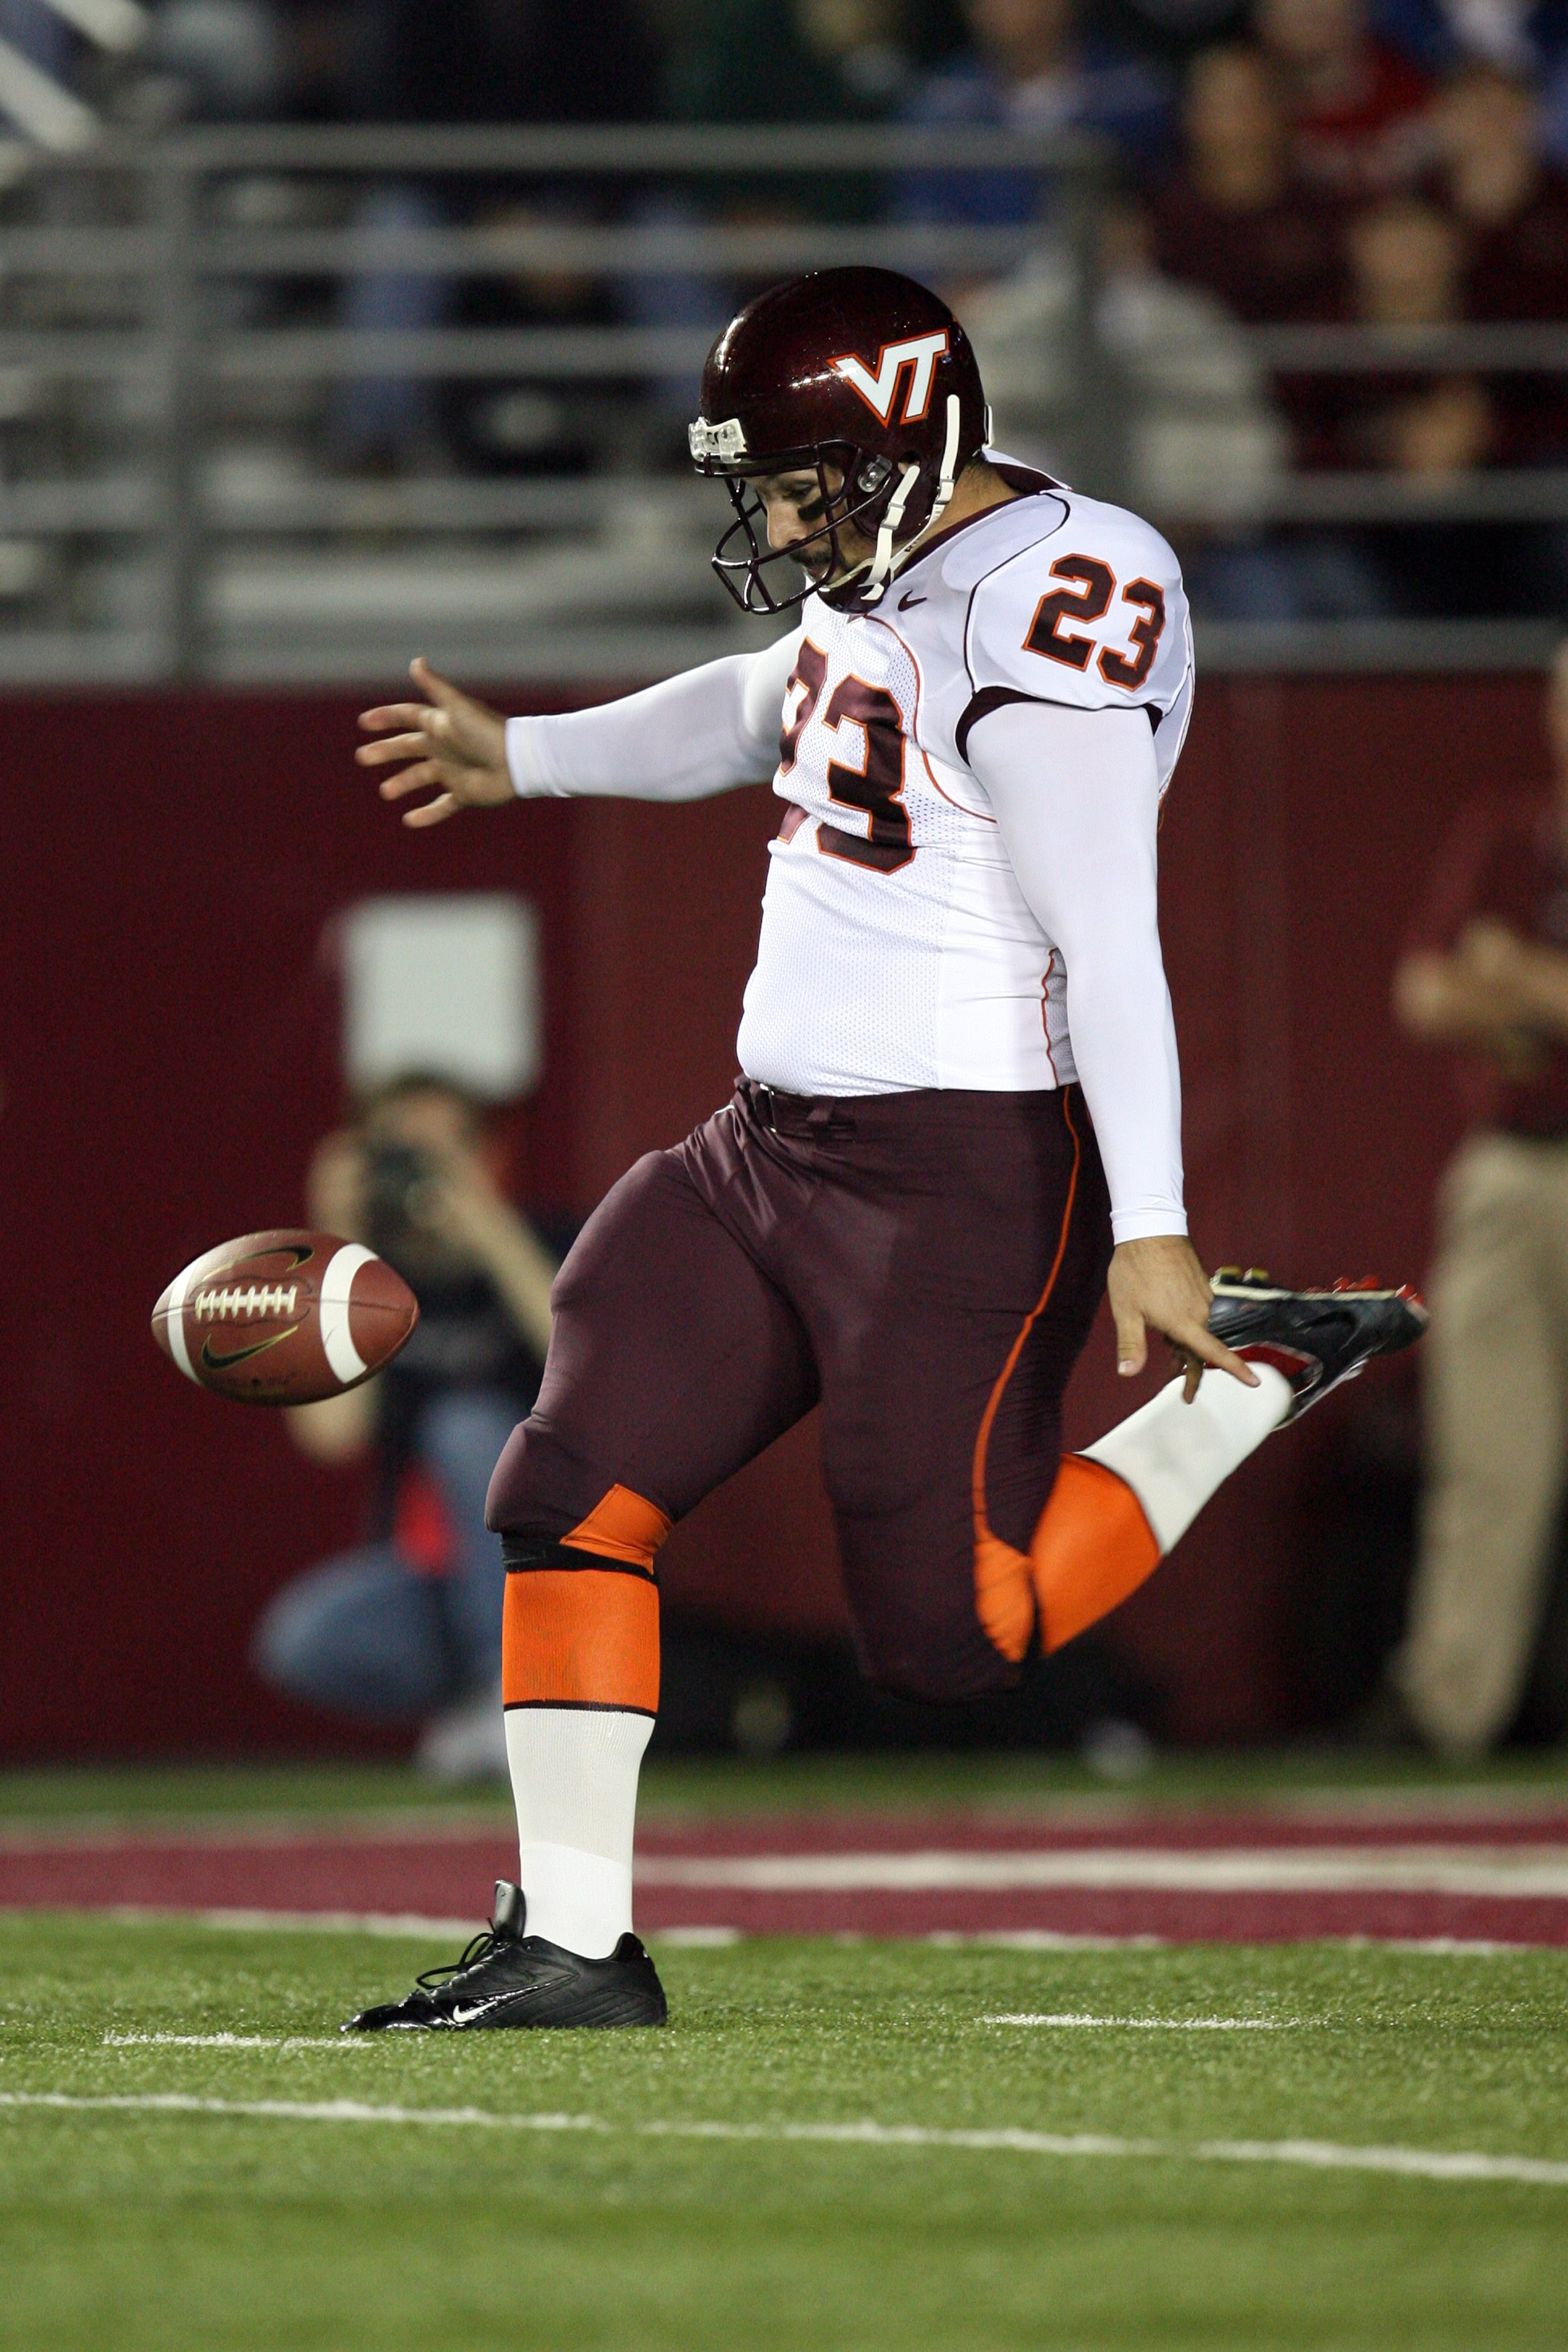 Virginia Tech Hokies v Boston College Eagles